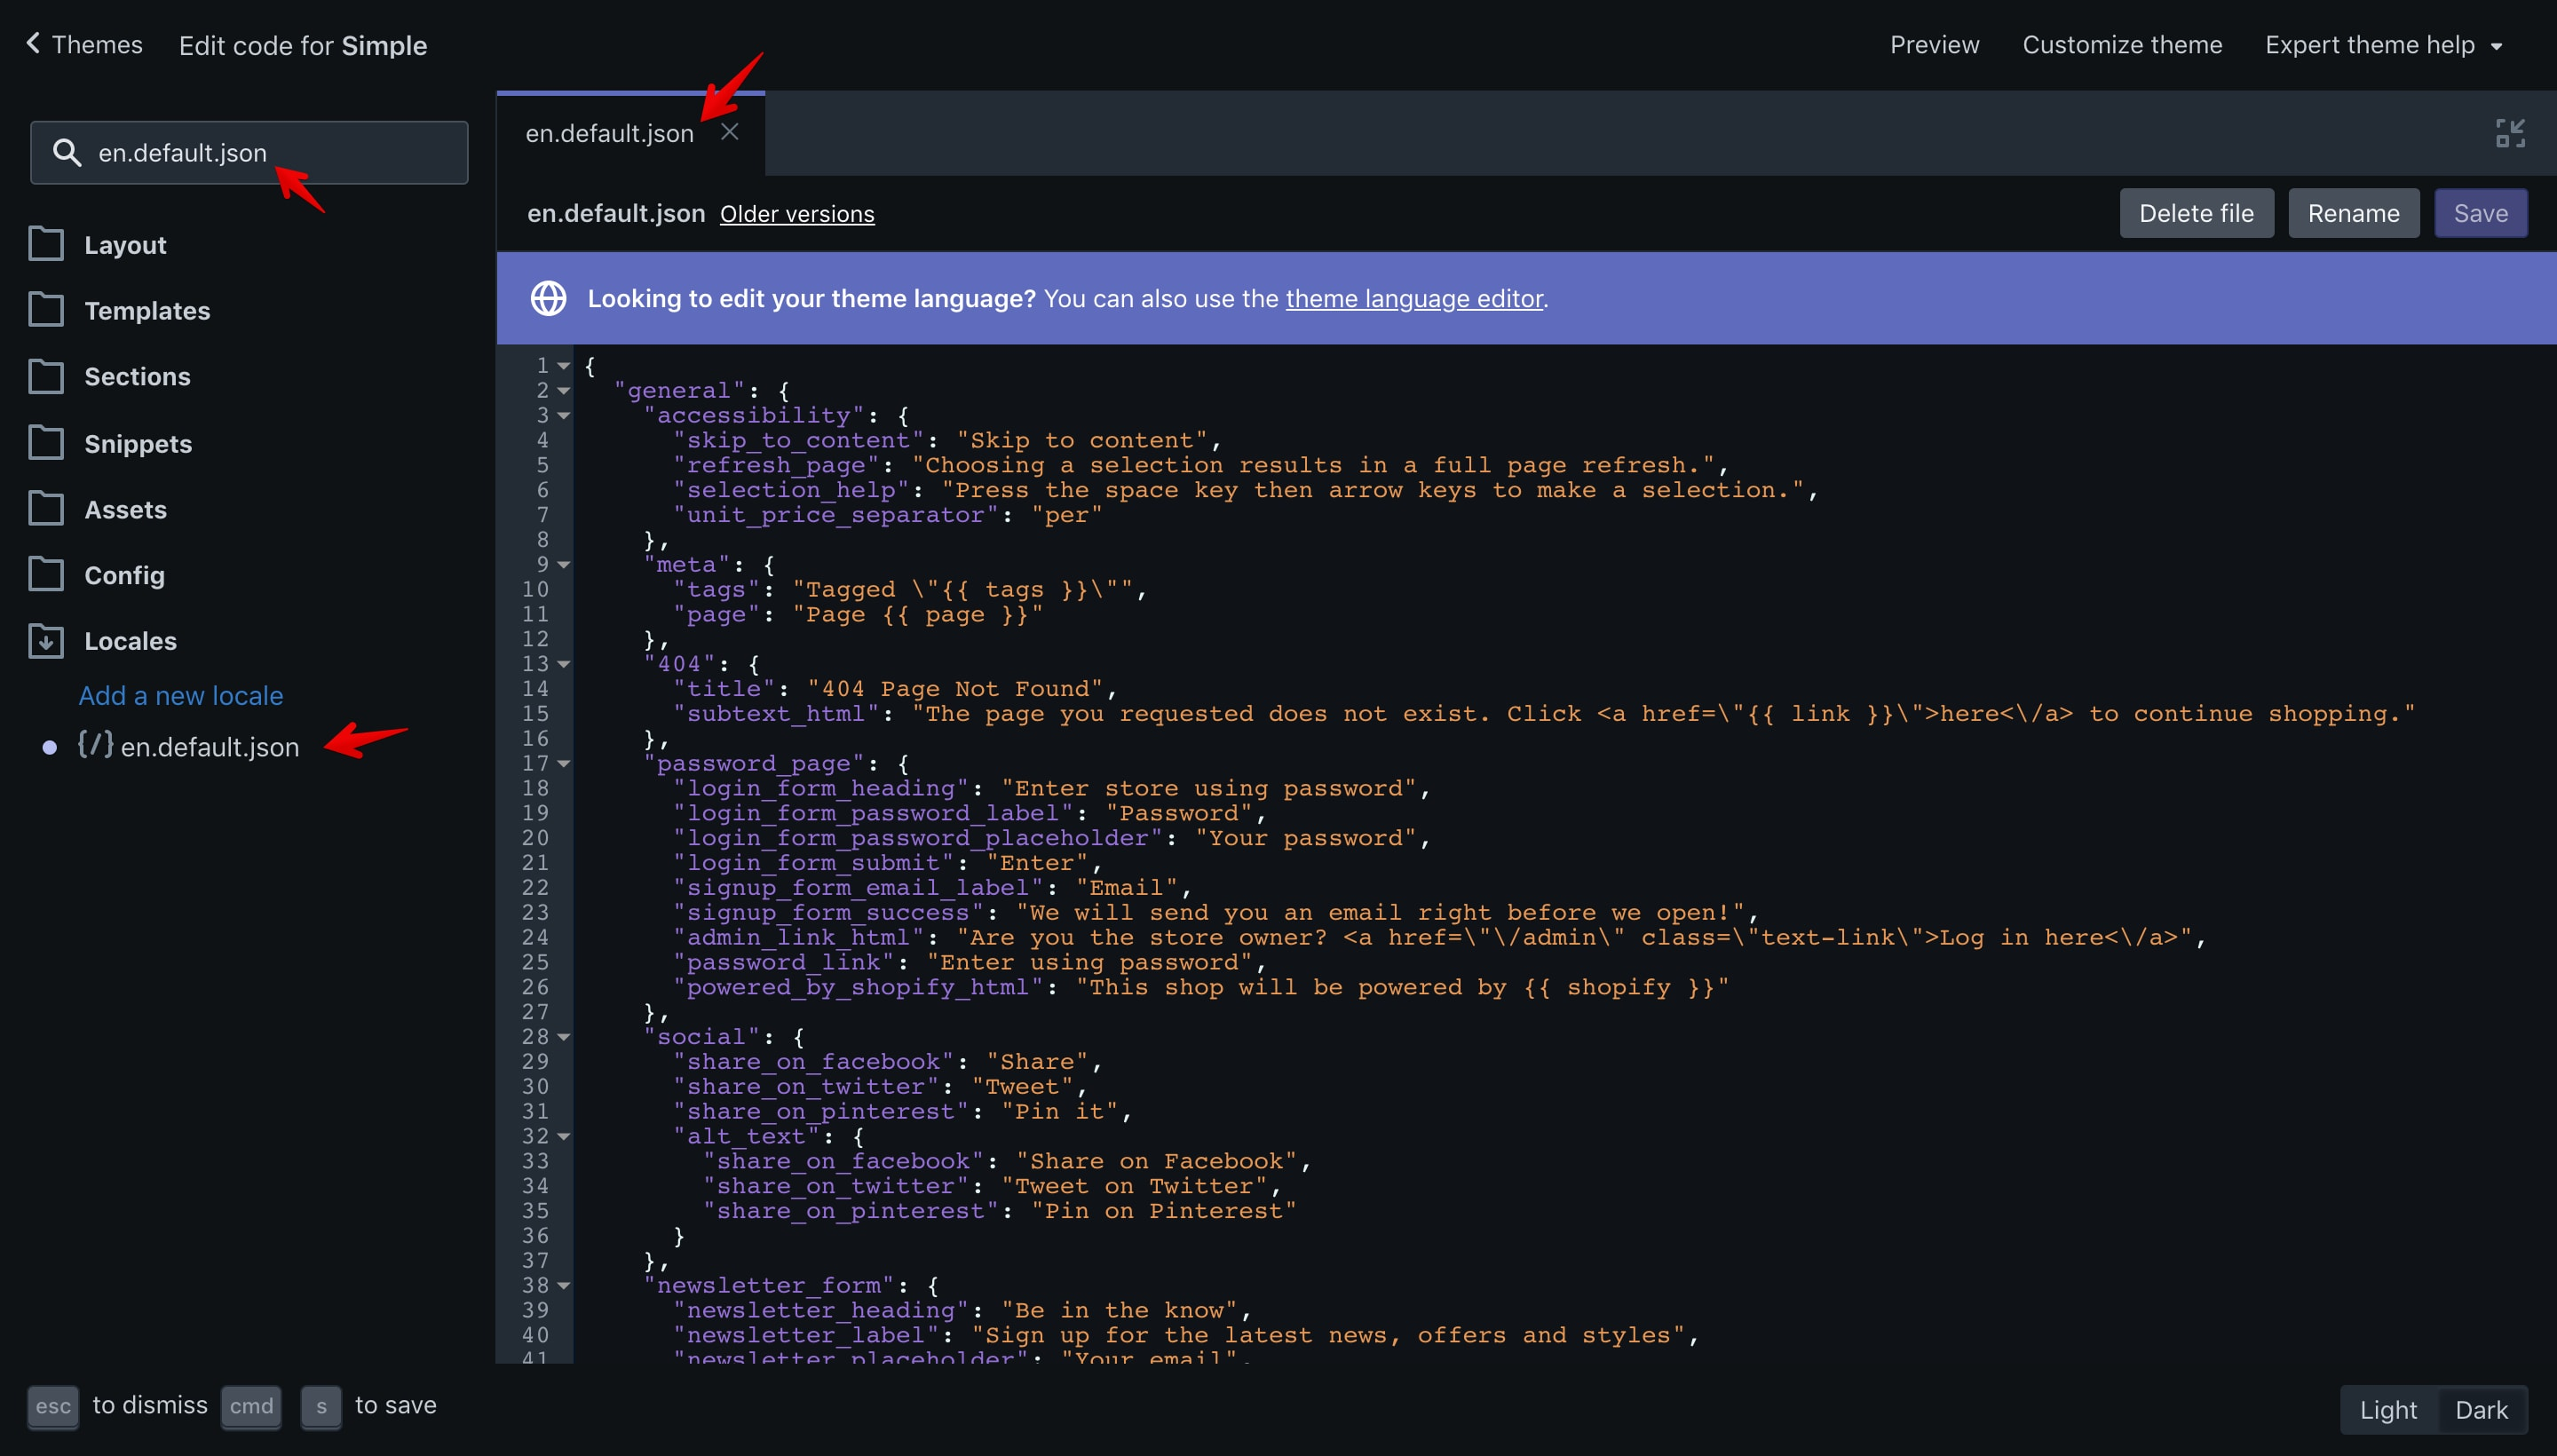 """Simple theme """"en.default.json"""" file opened in the code editor."""